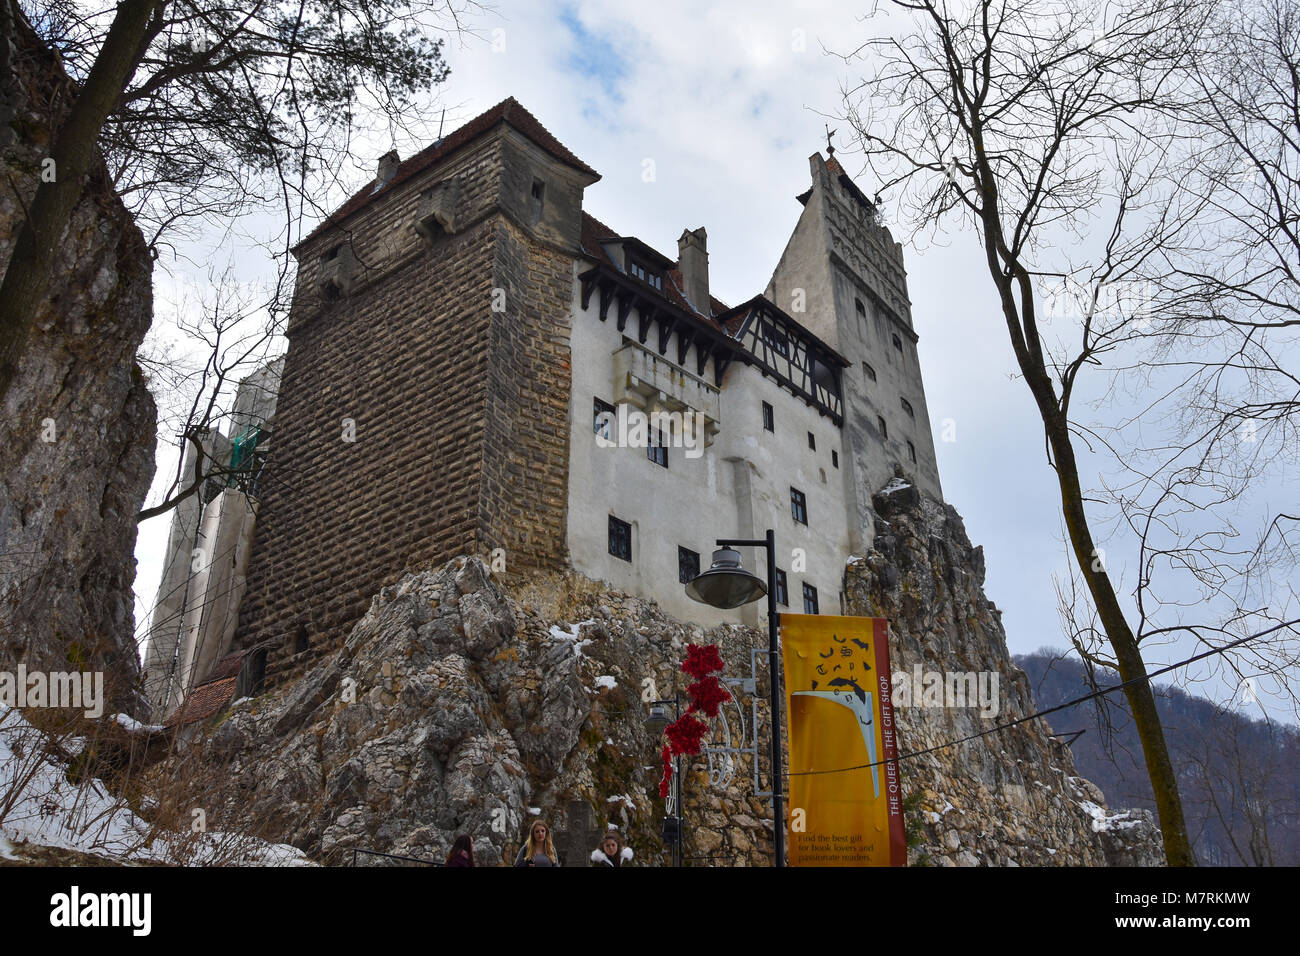 Bran, Romania. February 4, 2017. Bran Castle (Castelul Bran), commonly known as 'Dracula's Castle' - Stock Image